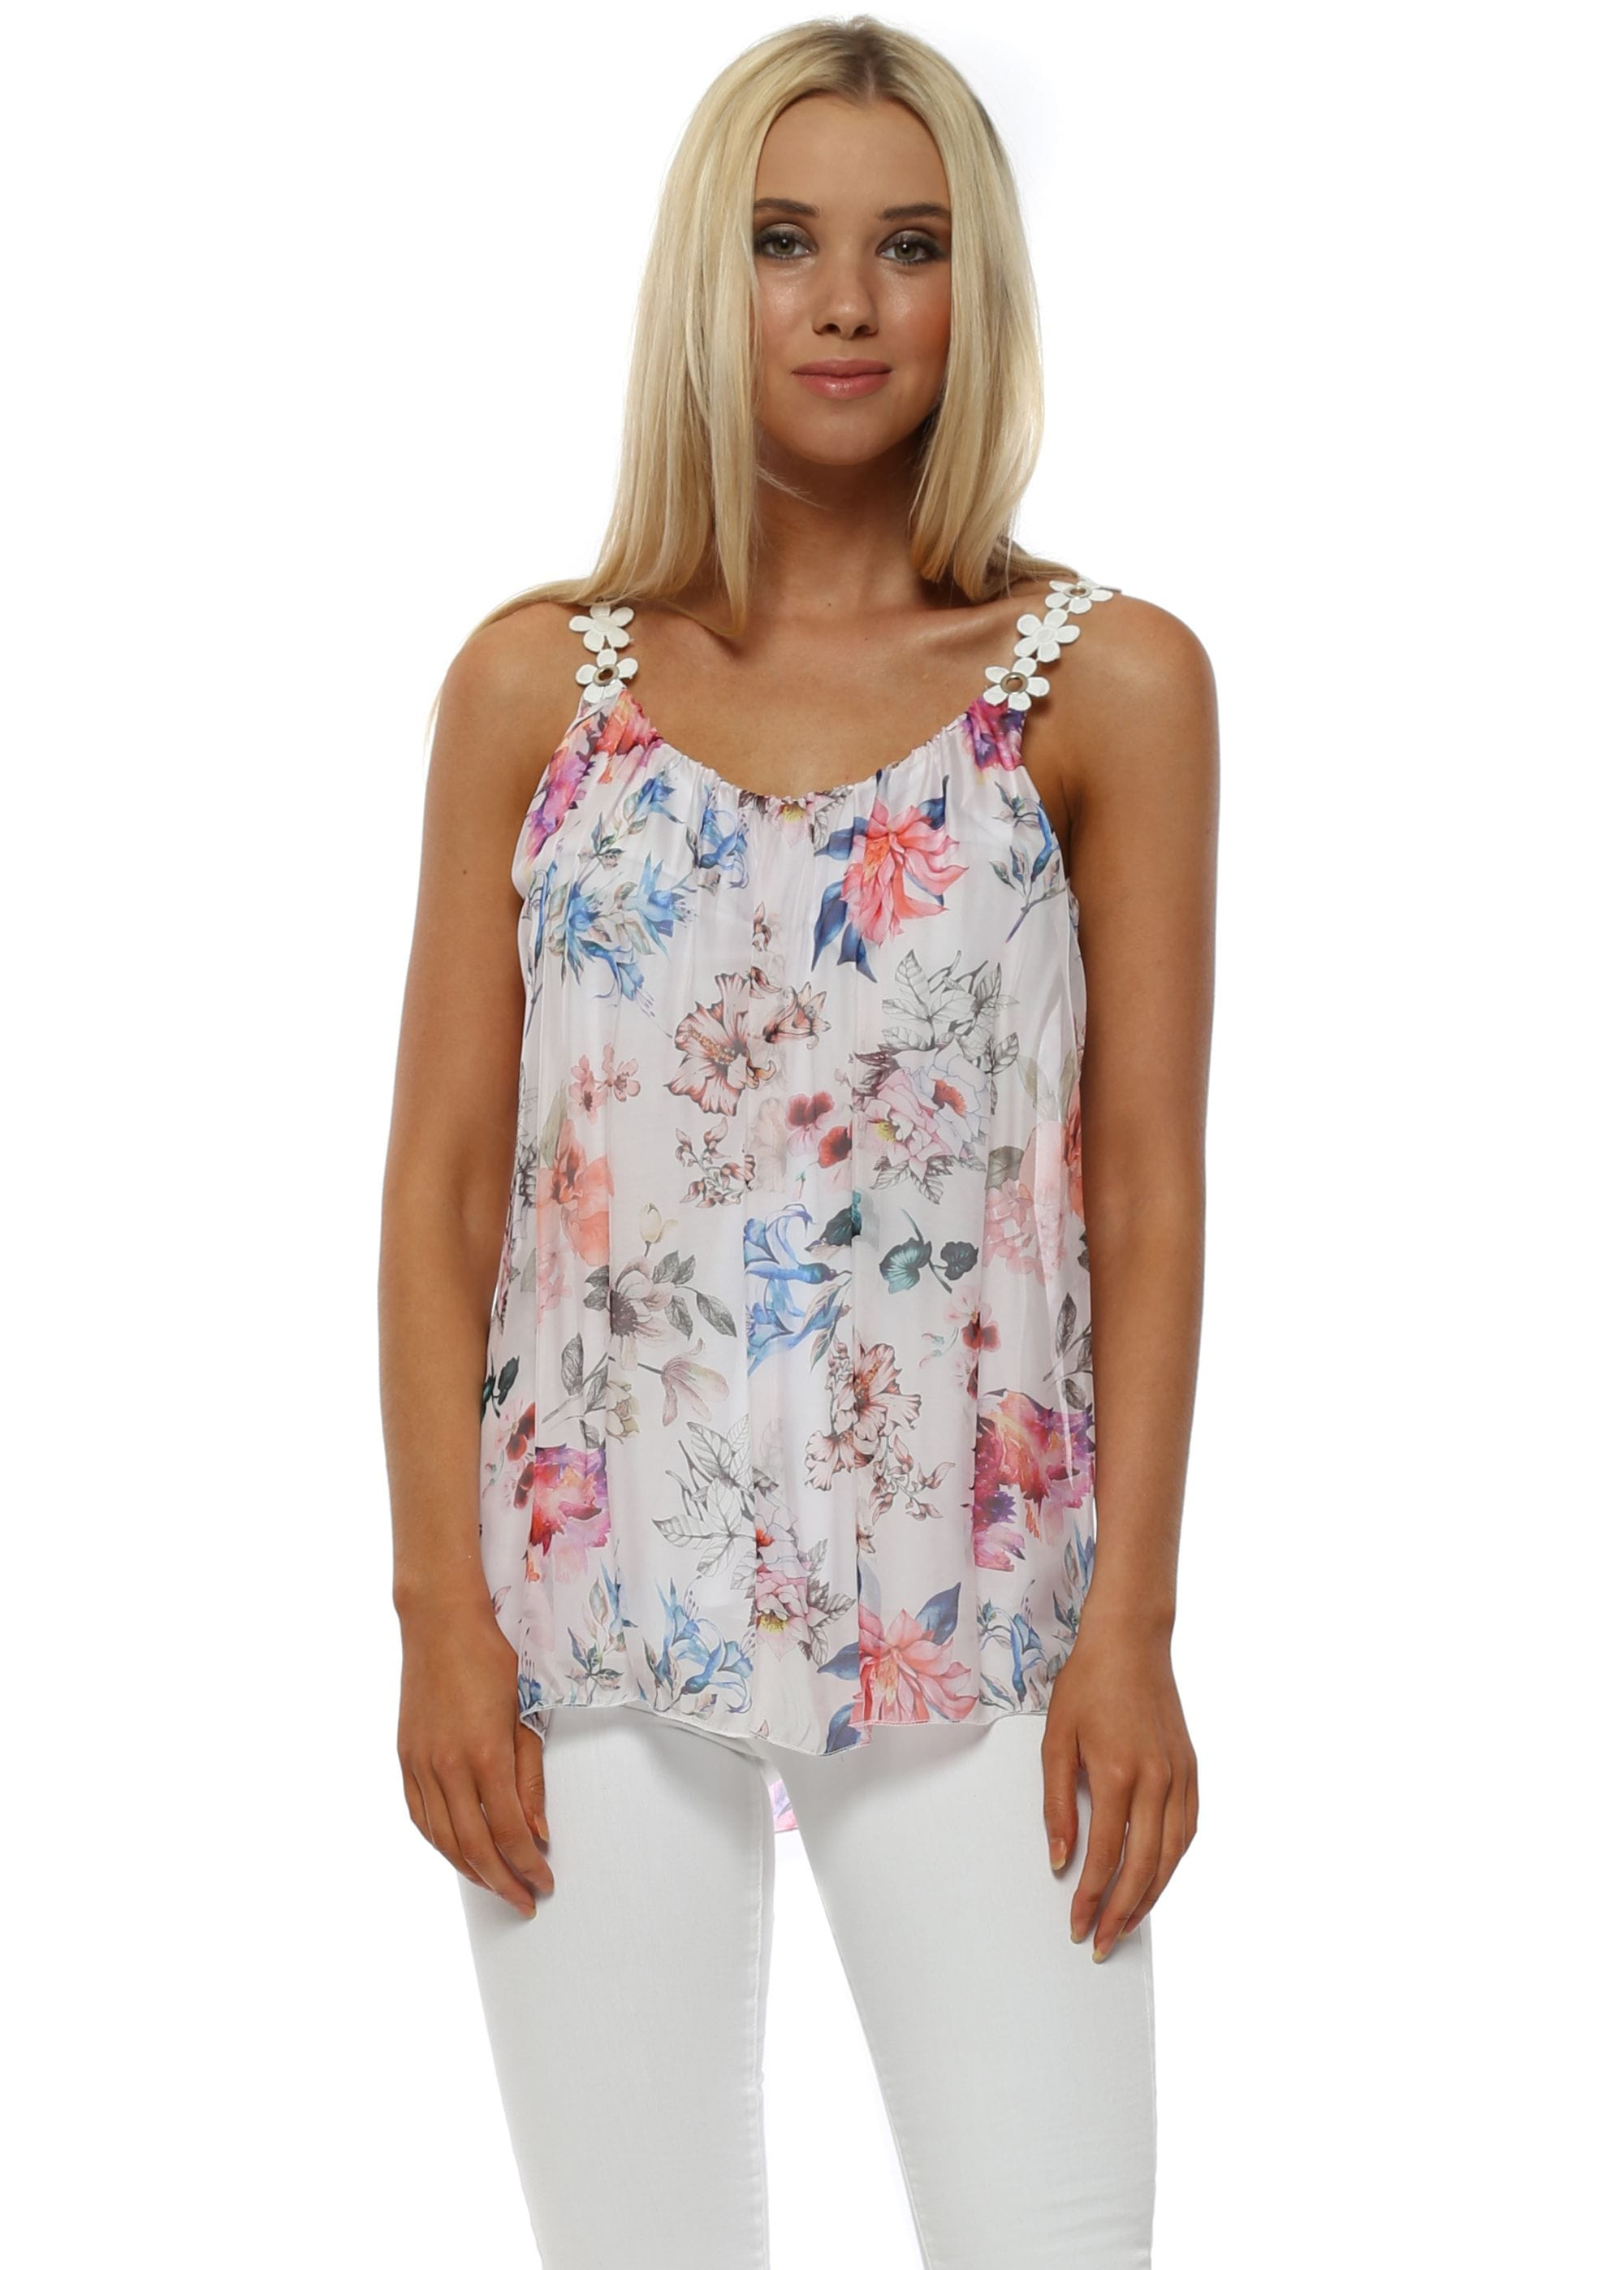 7de60bd3b4291 Made In Italy White Silk Floral Cami Vest